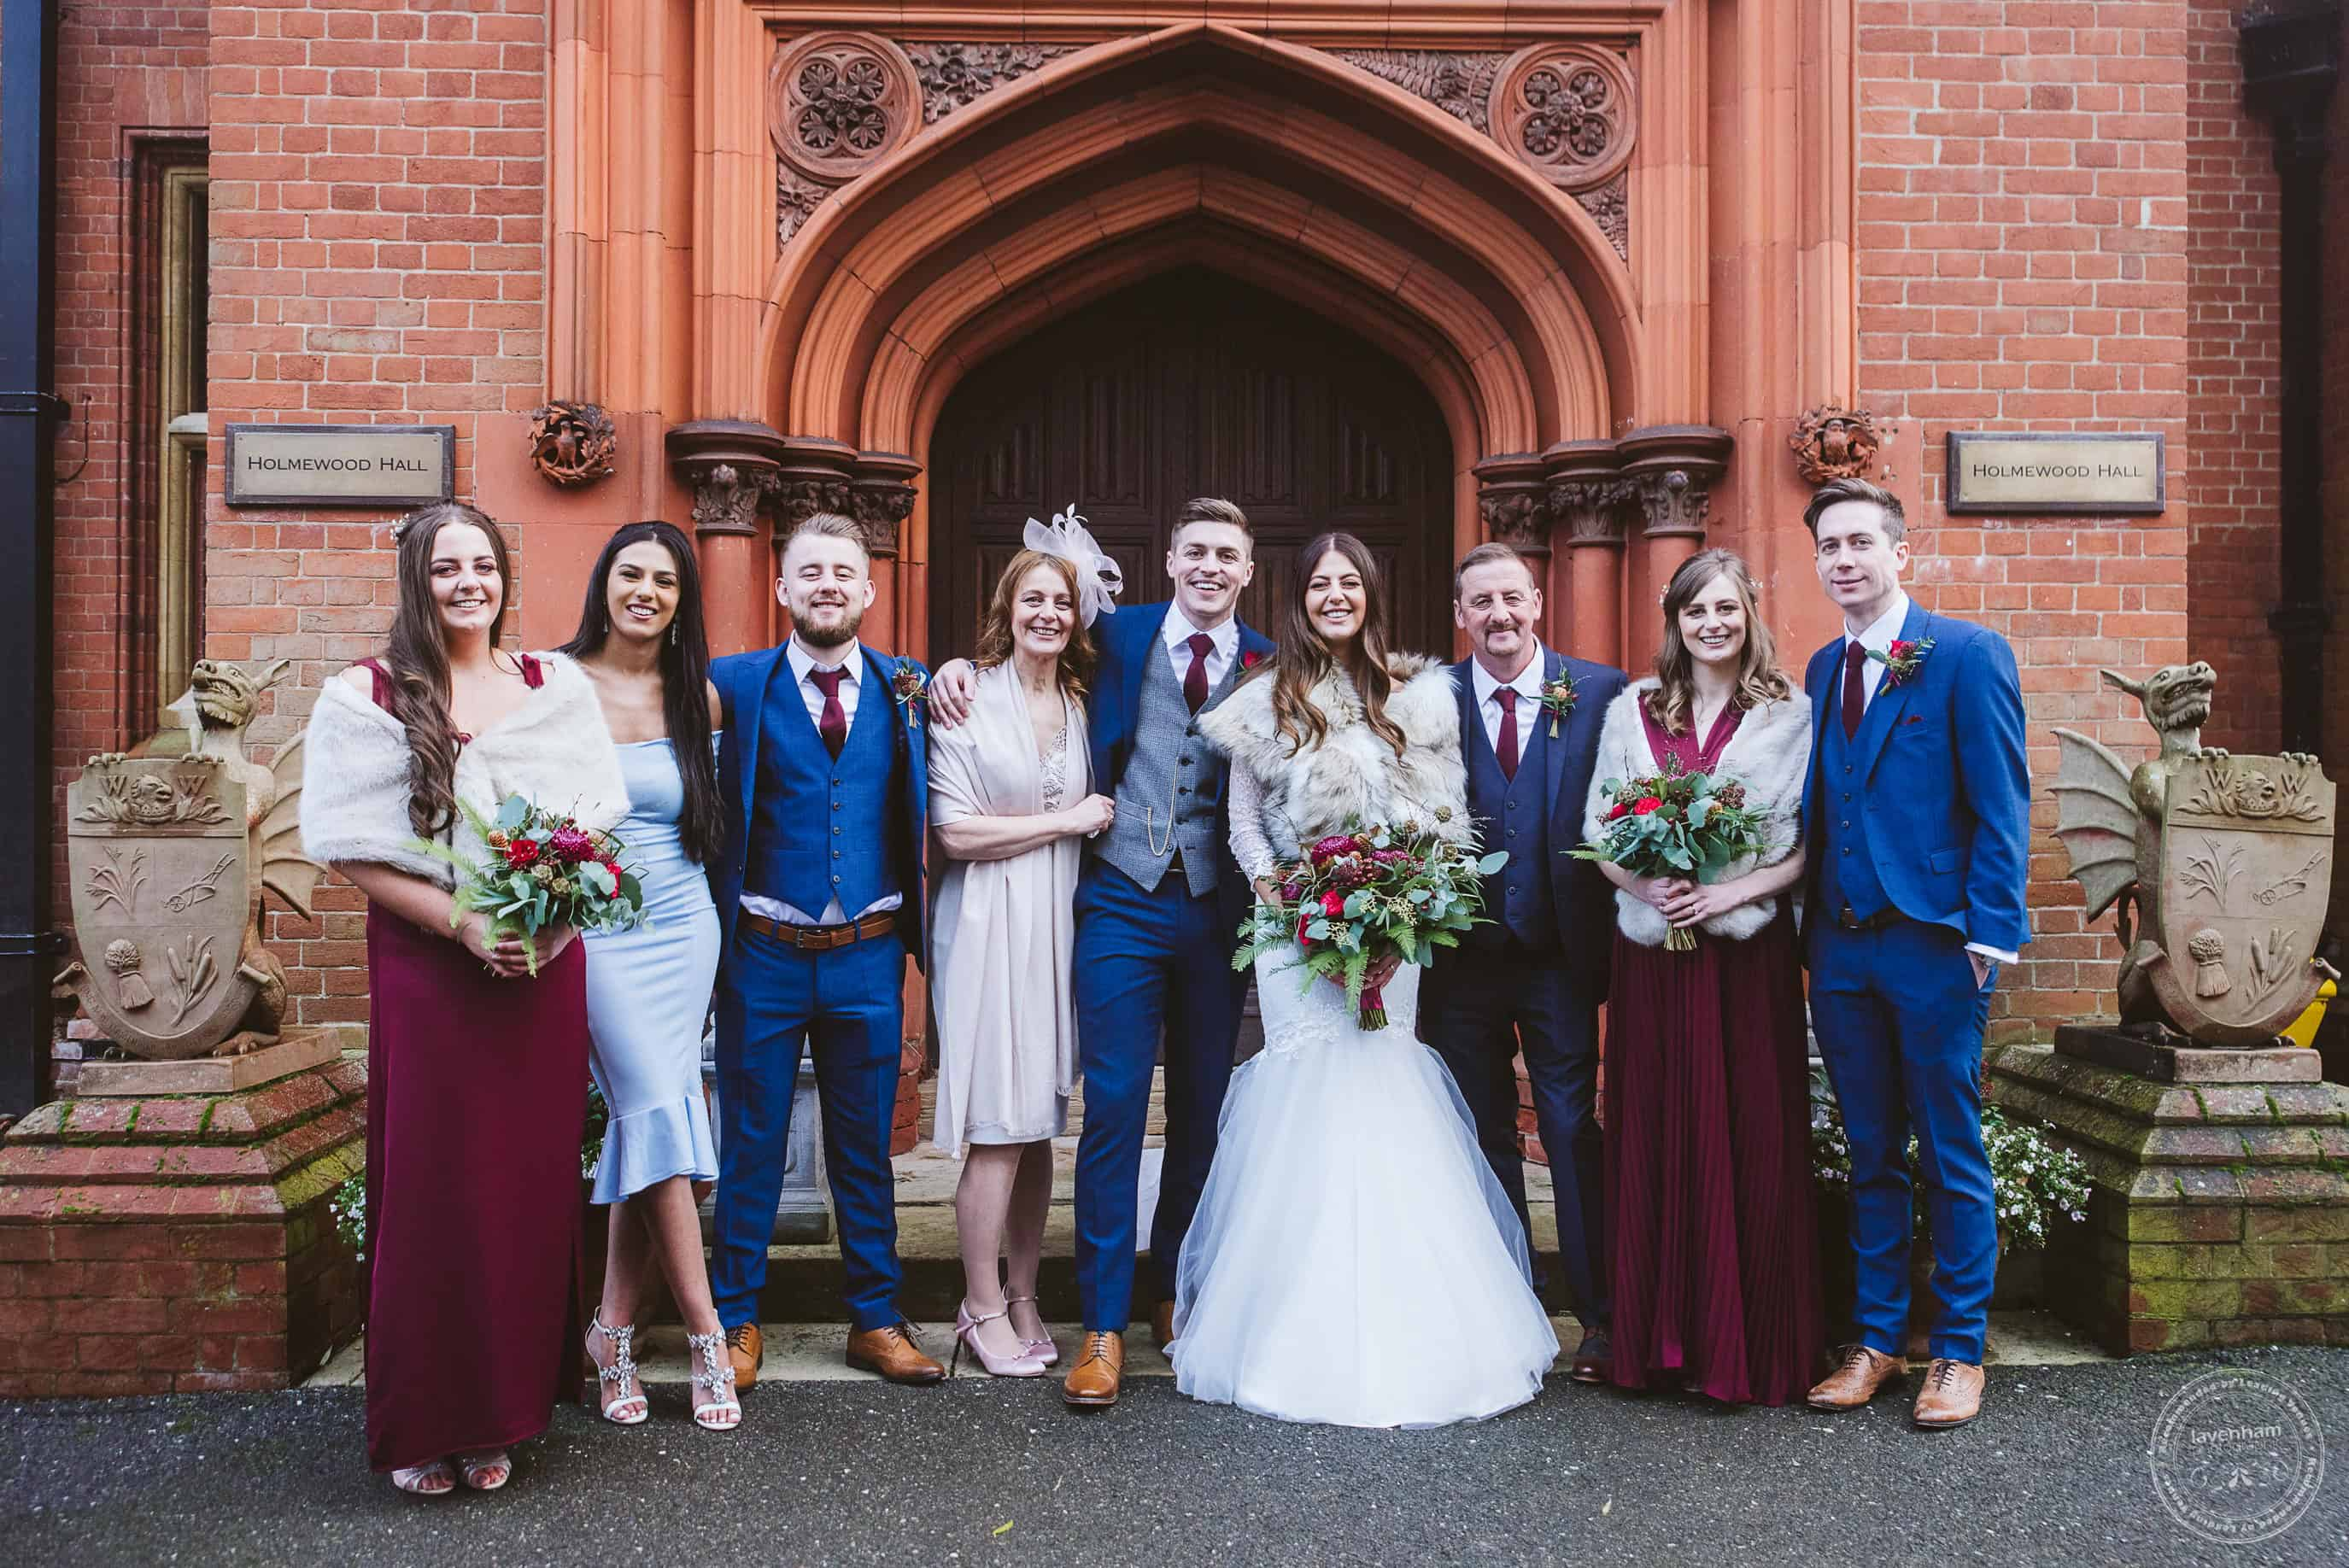 301119 Holmewood Hall Wedding Photographer 155